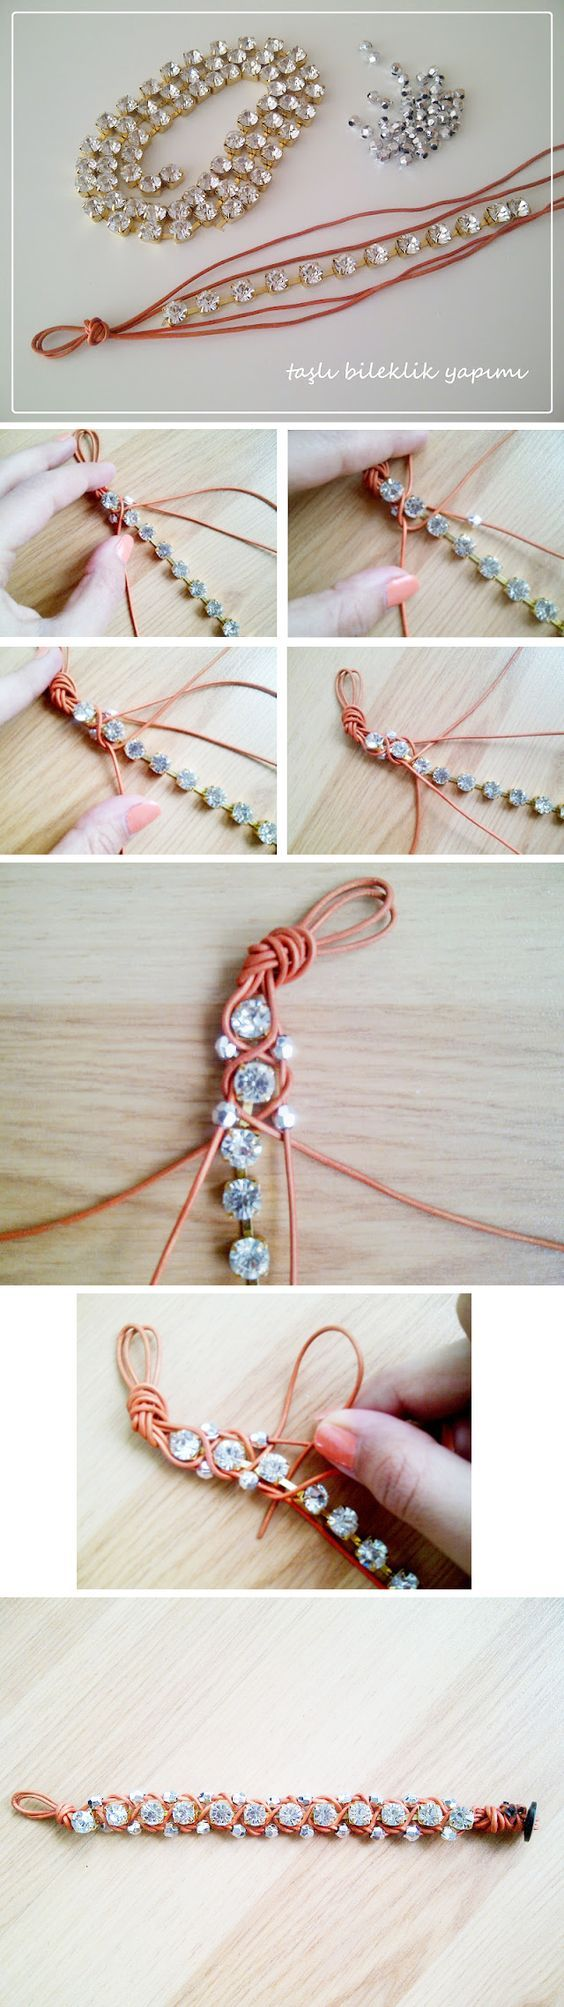 10 diy bracelet ideas sliding knot tutorials and craft 3 sliding knot closure learn how to make a sliding knot with this super simple baditri Image collections